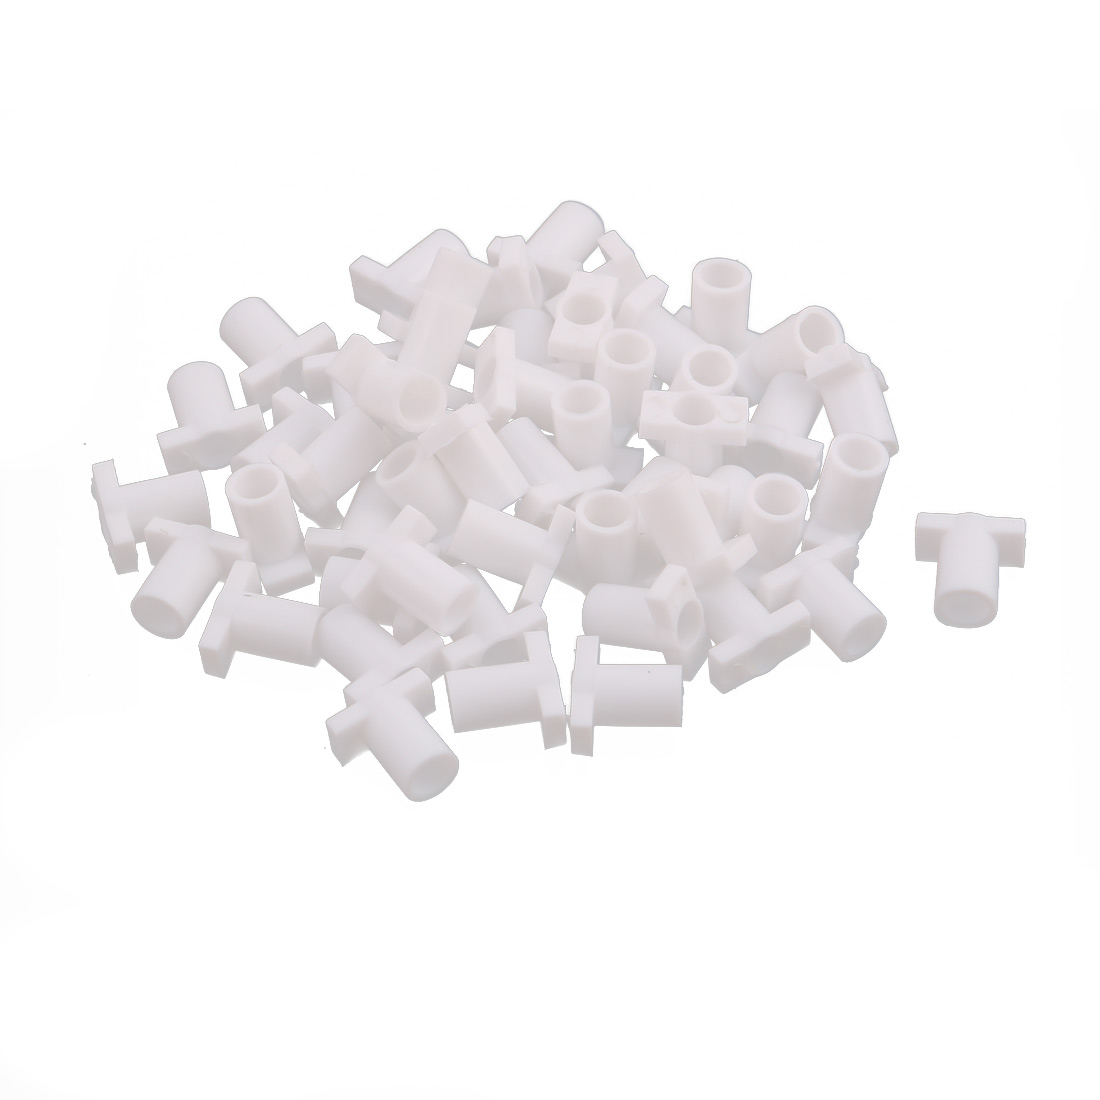 7mmx7mmx4mm Home DIY USB Type A Male Head Protection Sleeve Tail Connector White 50pcs